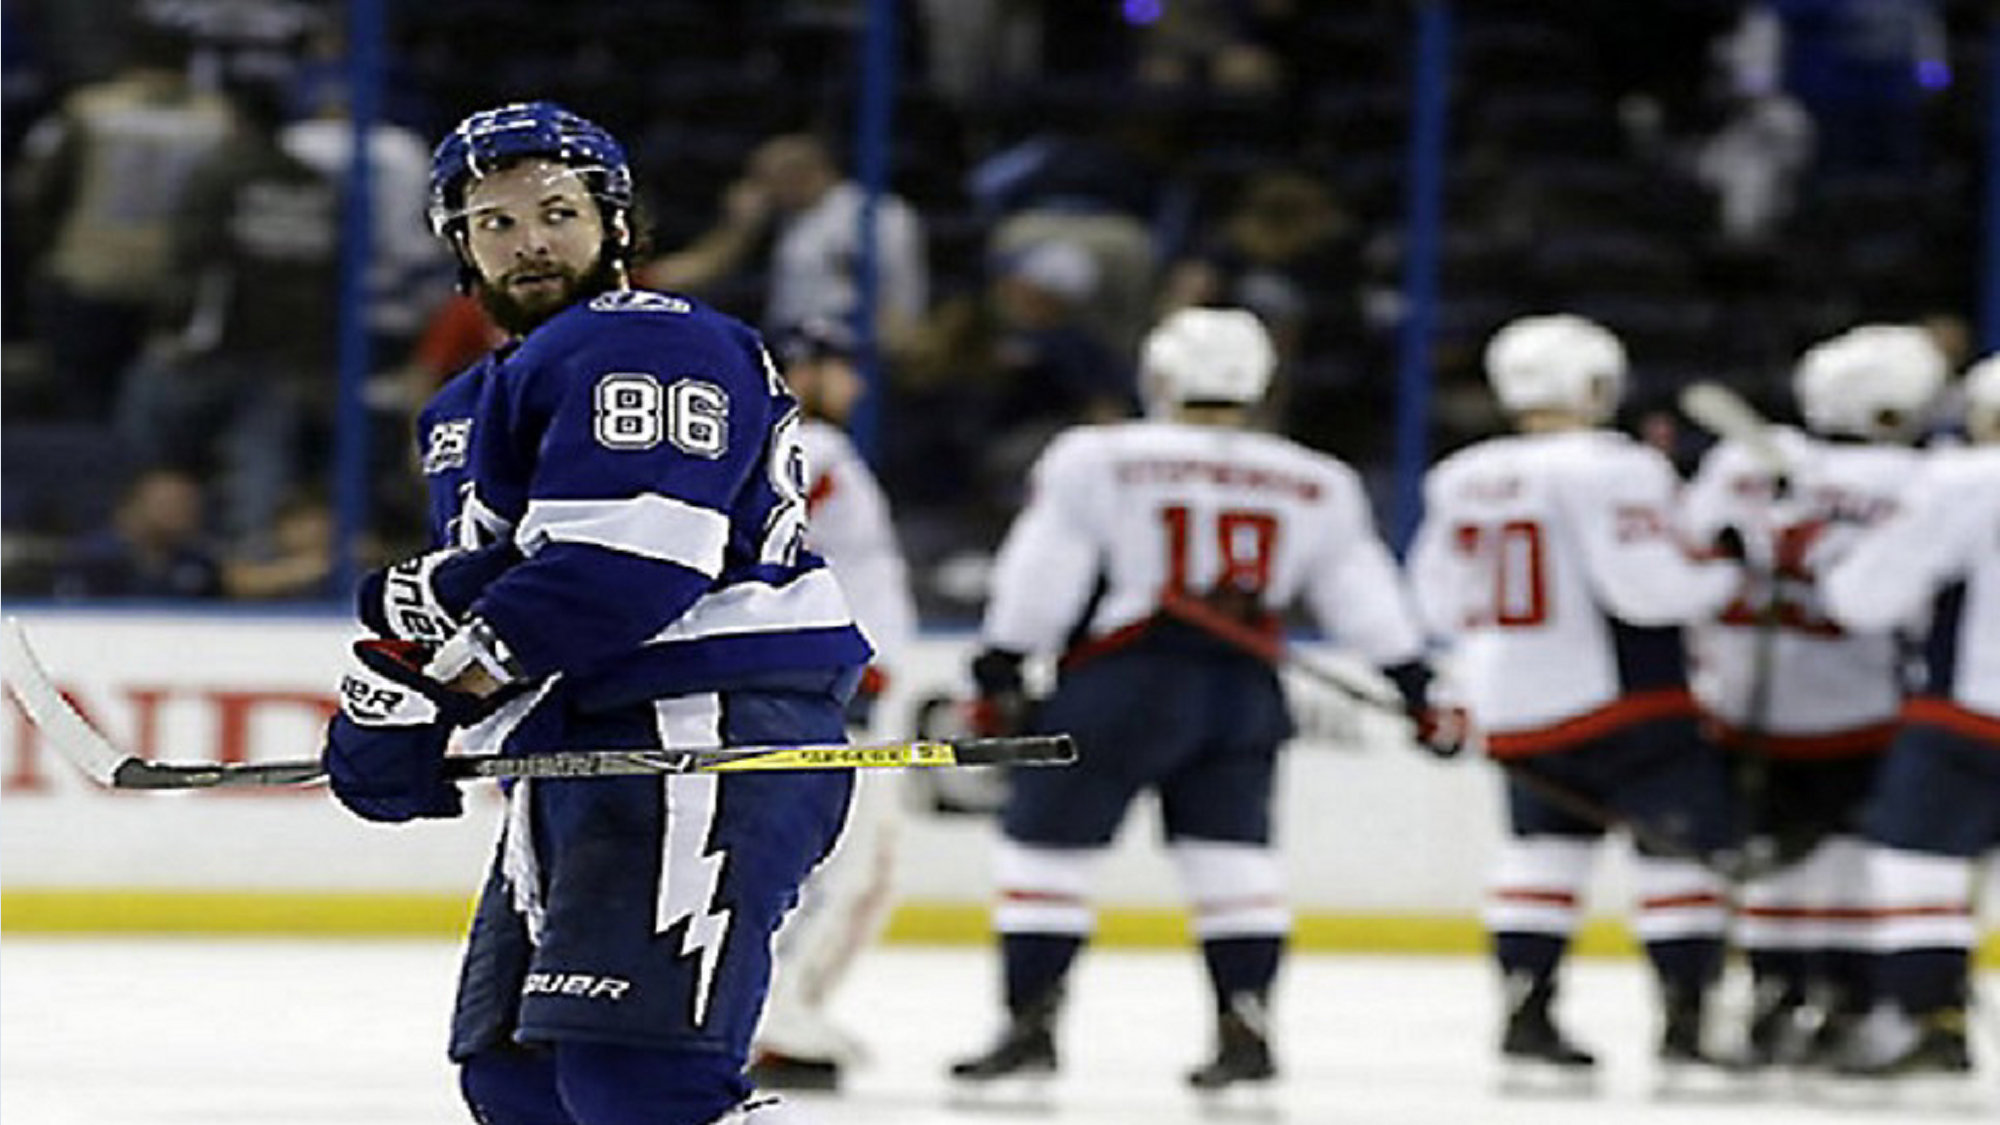 9abe25a35de Tampa Bay Lightning right wing Nikita Kucherov (86) and teammates are  trying to advance to the Stanley Cup finals. (AP Photo Chris O Meara)